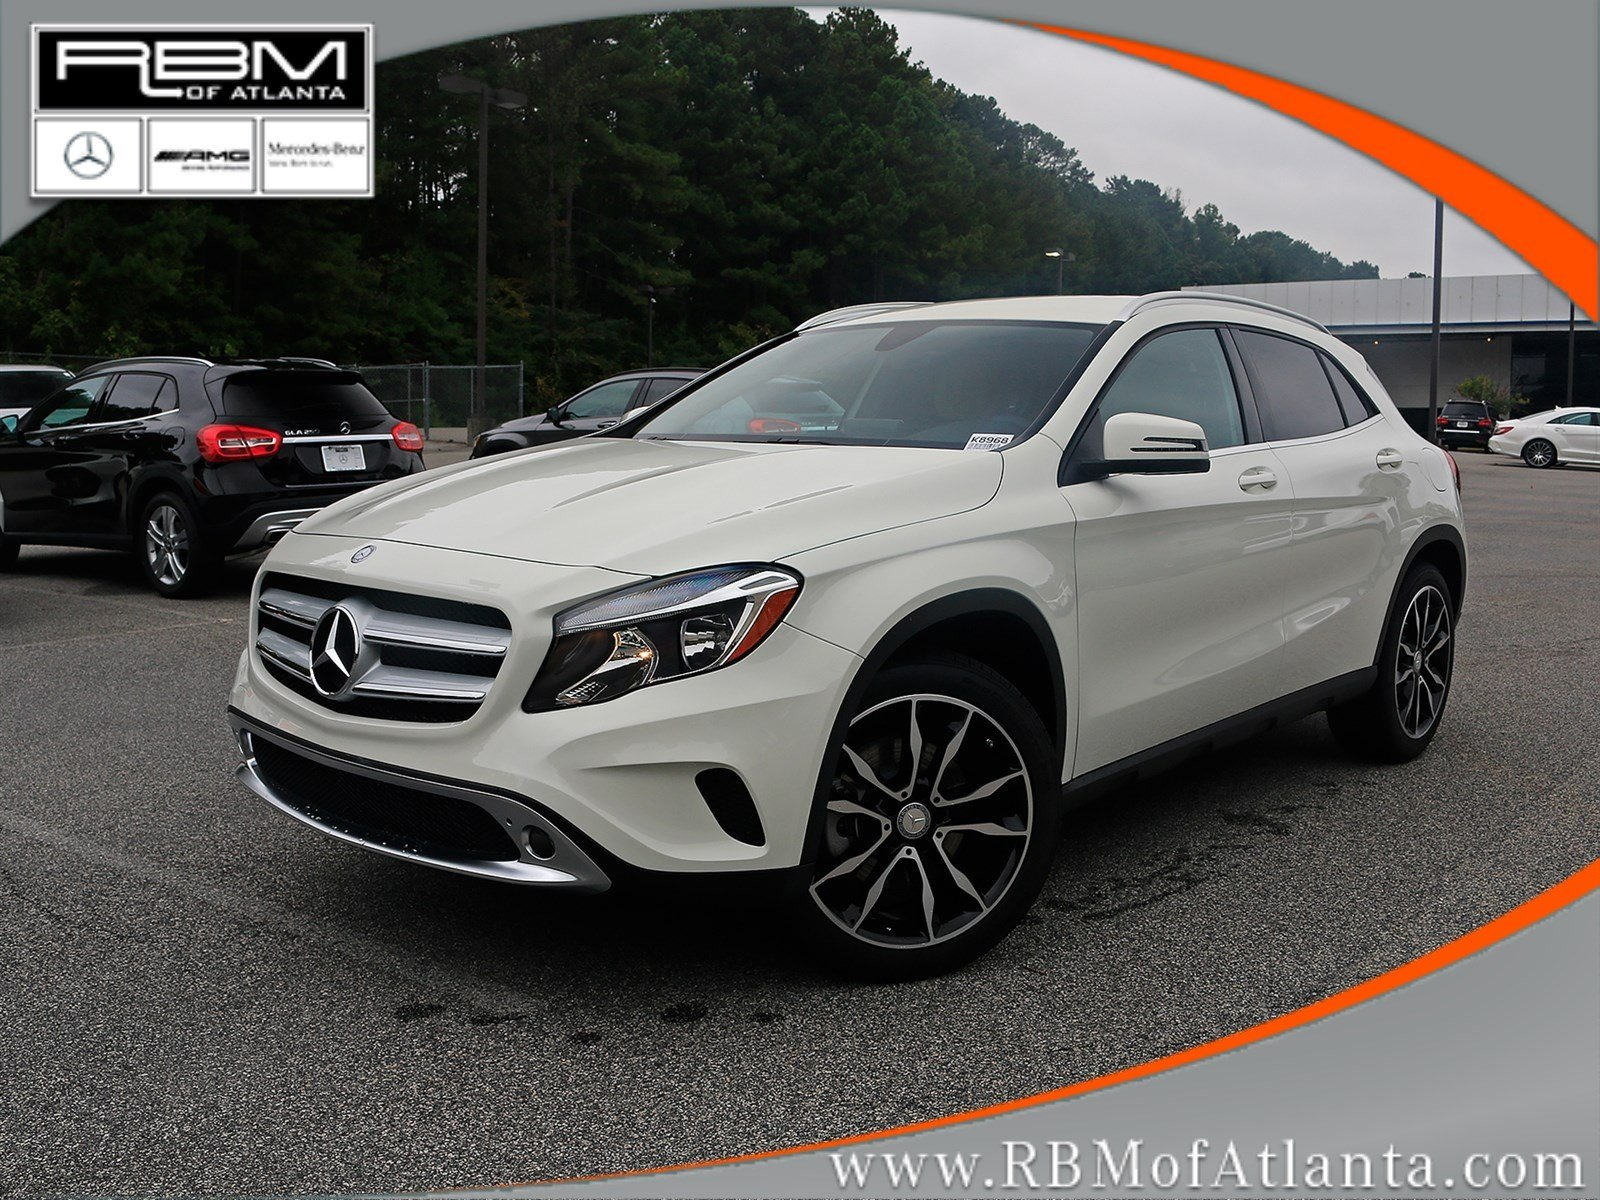 new 2017 mercedes benz gla gla 250 sport utility in atlanta k8968 rbm of atlanta. Black Bedroom Furniture Sets. Home Design Ideas